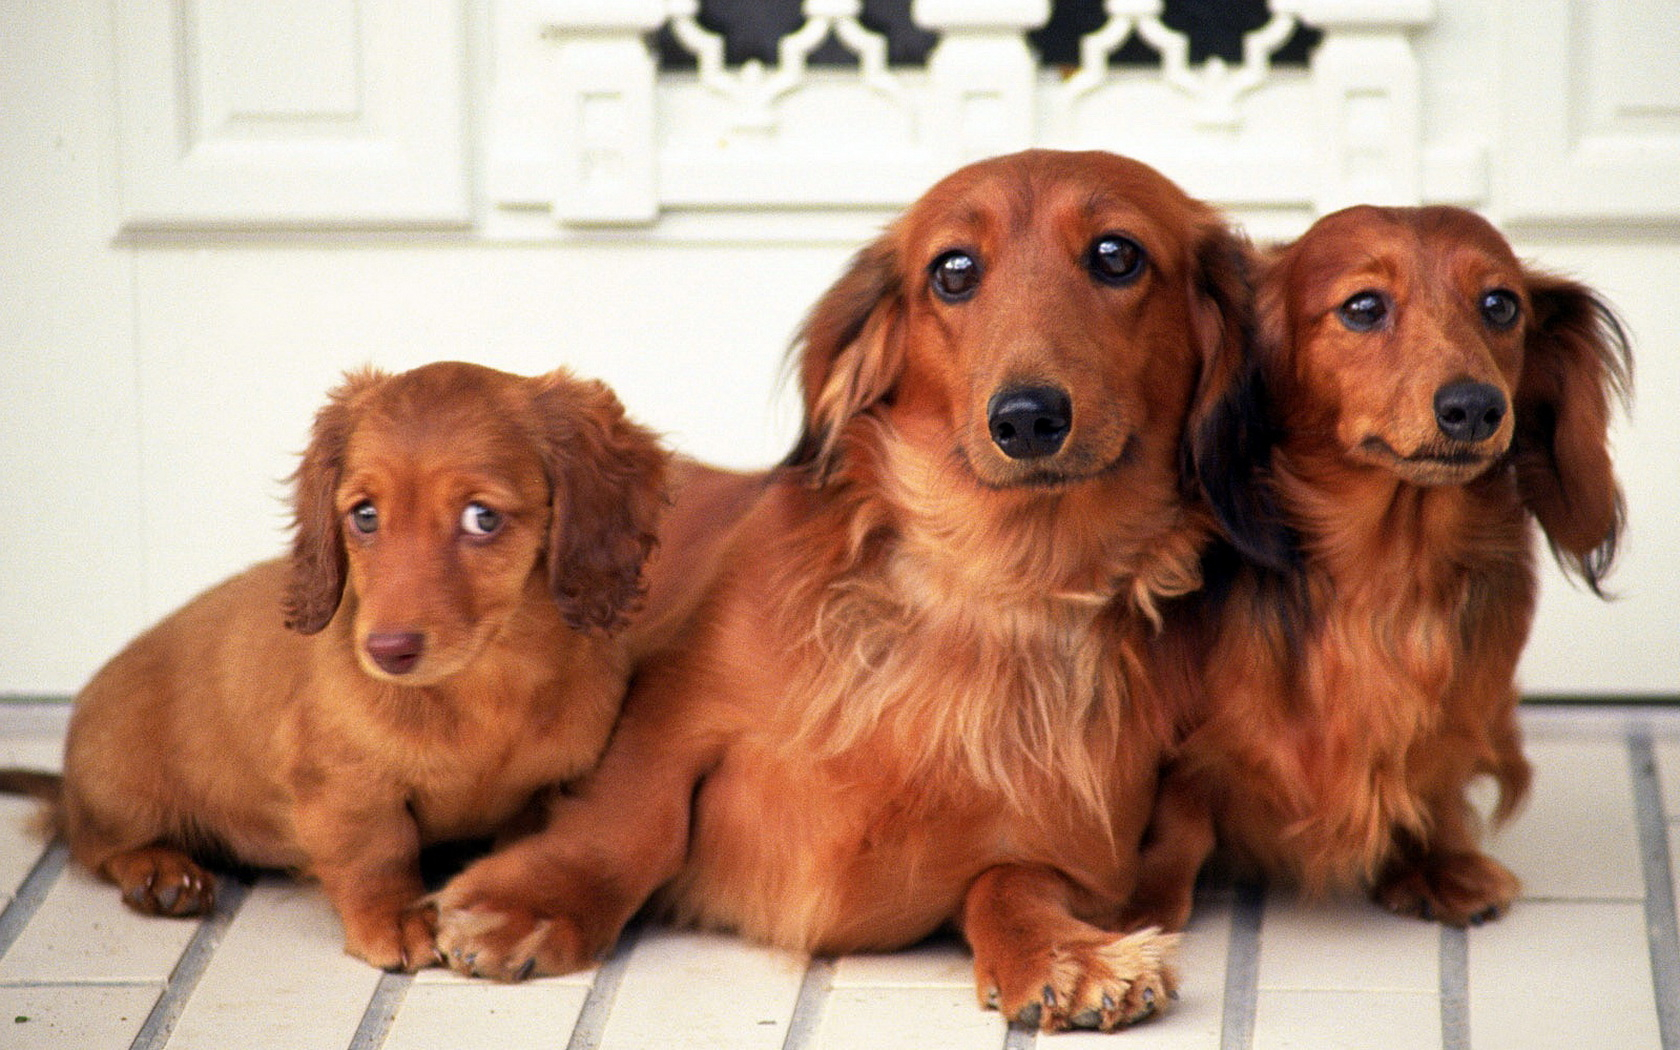 Family of dachshunds wallpapers and images wallpapers pictures 1680x1050